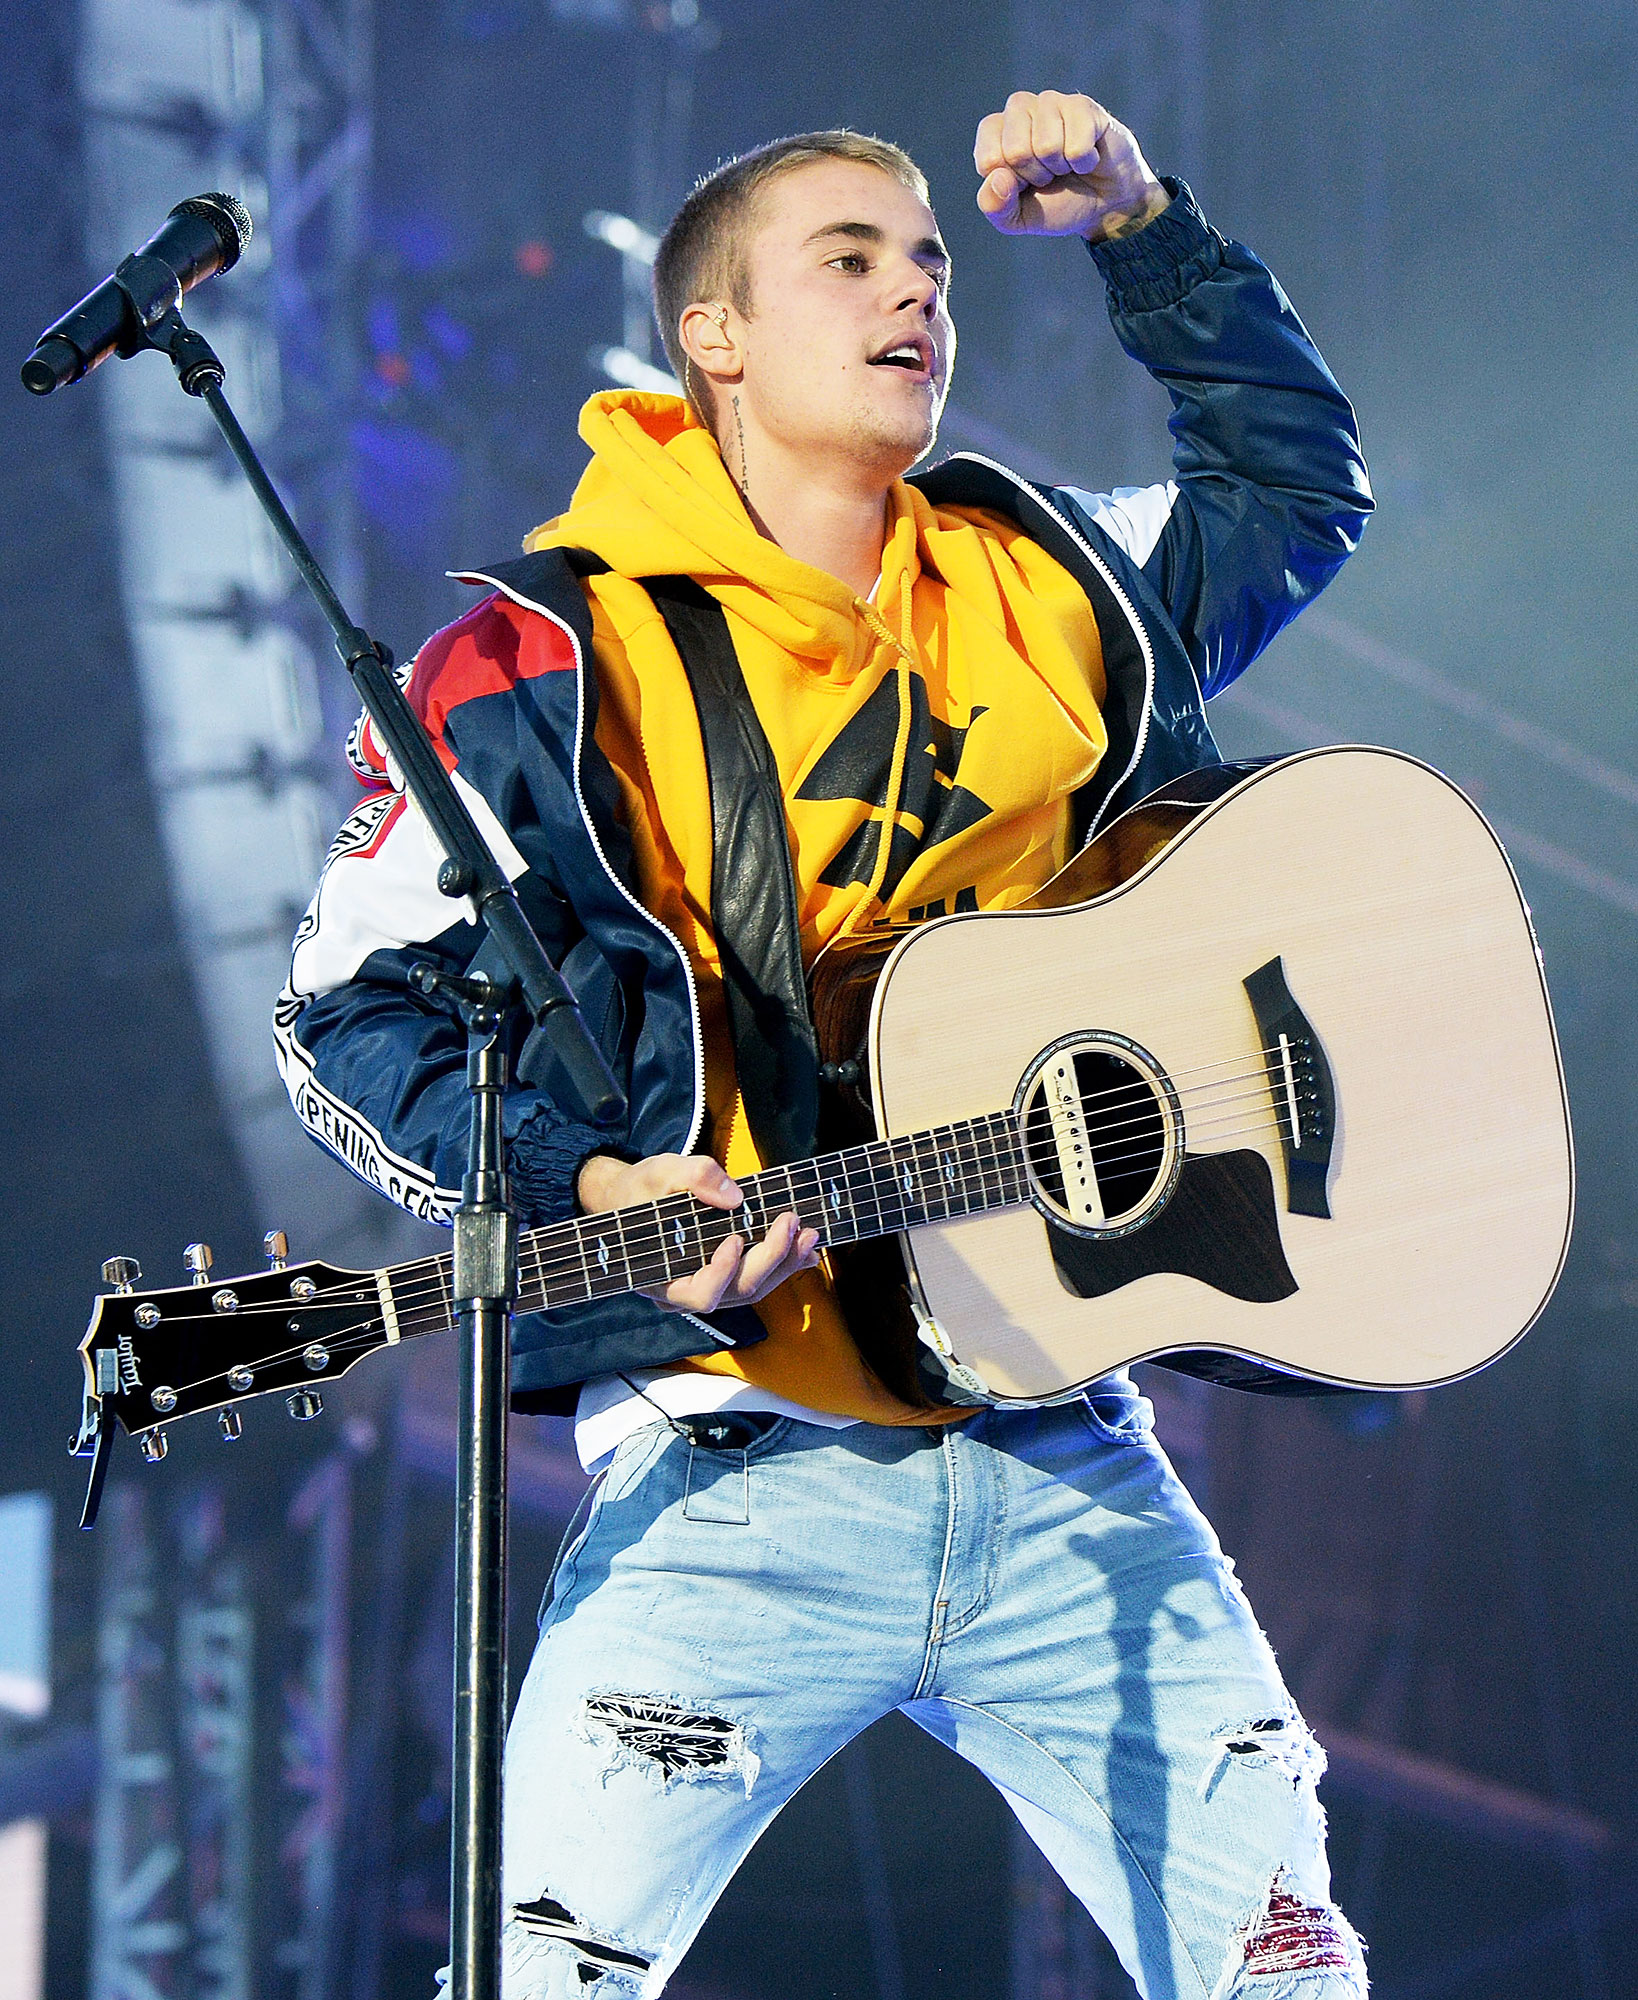 """Justin Bieber Through The Years Despacito Success - The singer-songwriter hopped on a remix of Luis Fonsi and Daddy Yankee 's song """"Despacito"""" and helped it become a global smash. The remix became the first Spanish-language song to hit No. 1 on the Billboard Hot 100 since """"Macarena"""" in 1996."""